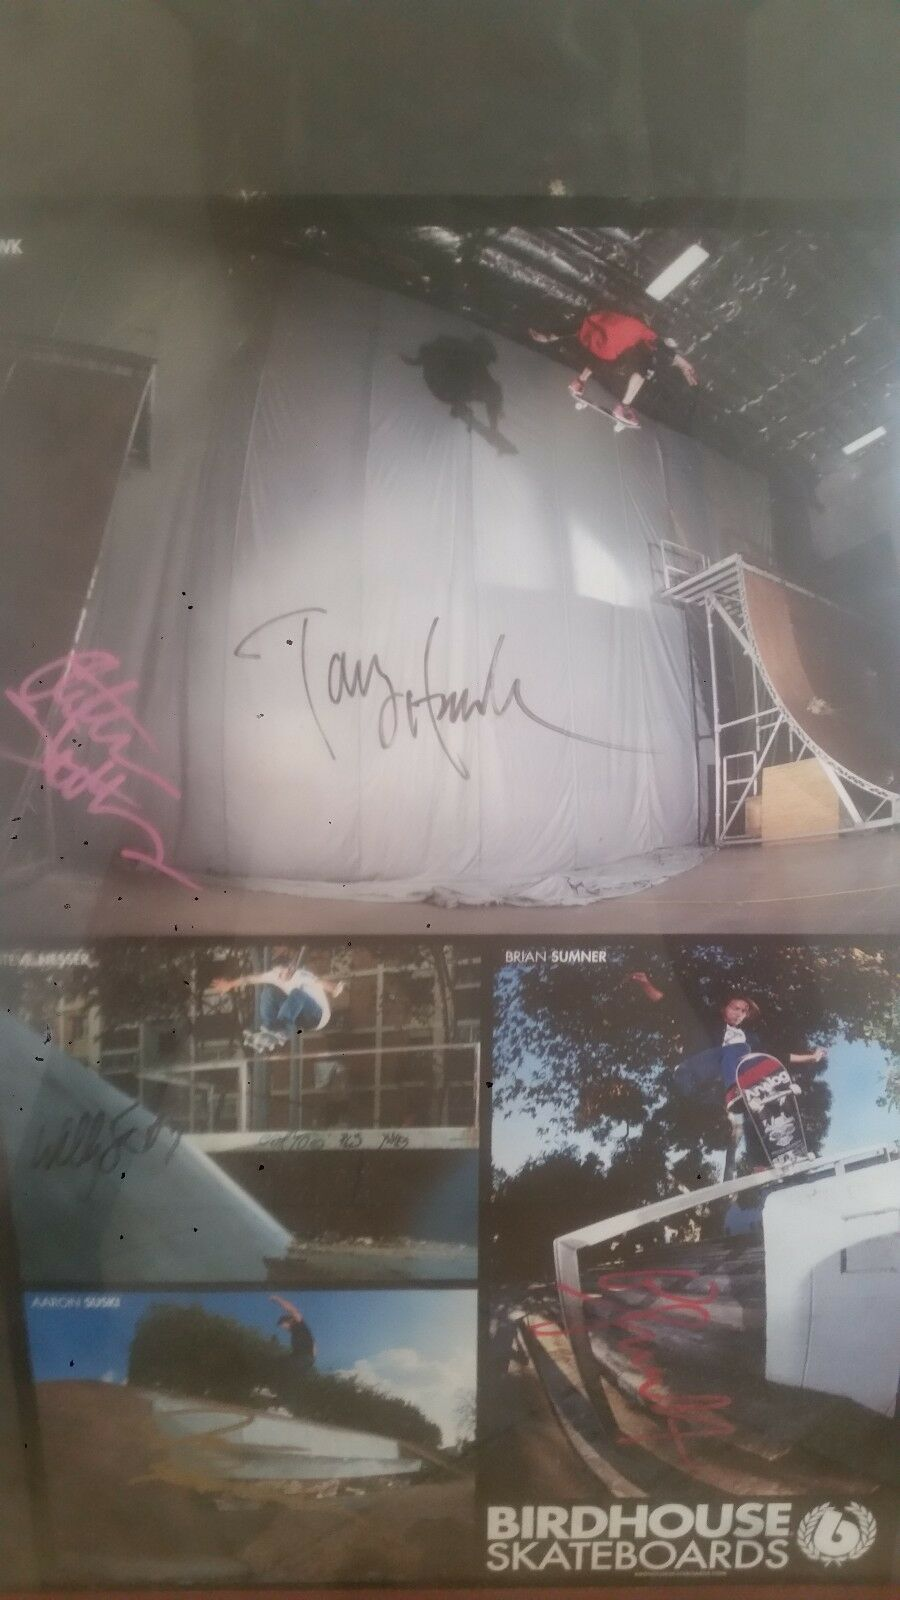 Poster signed by tony hawk, steve nesser, aaron suski and brian sumner.